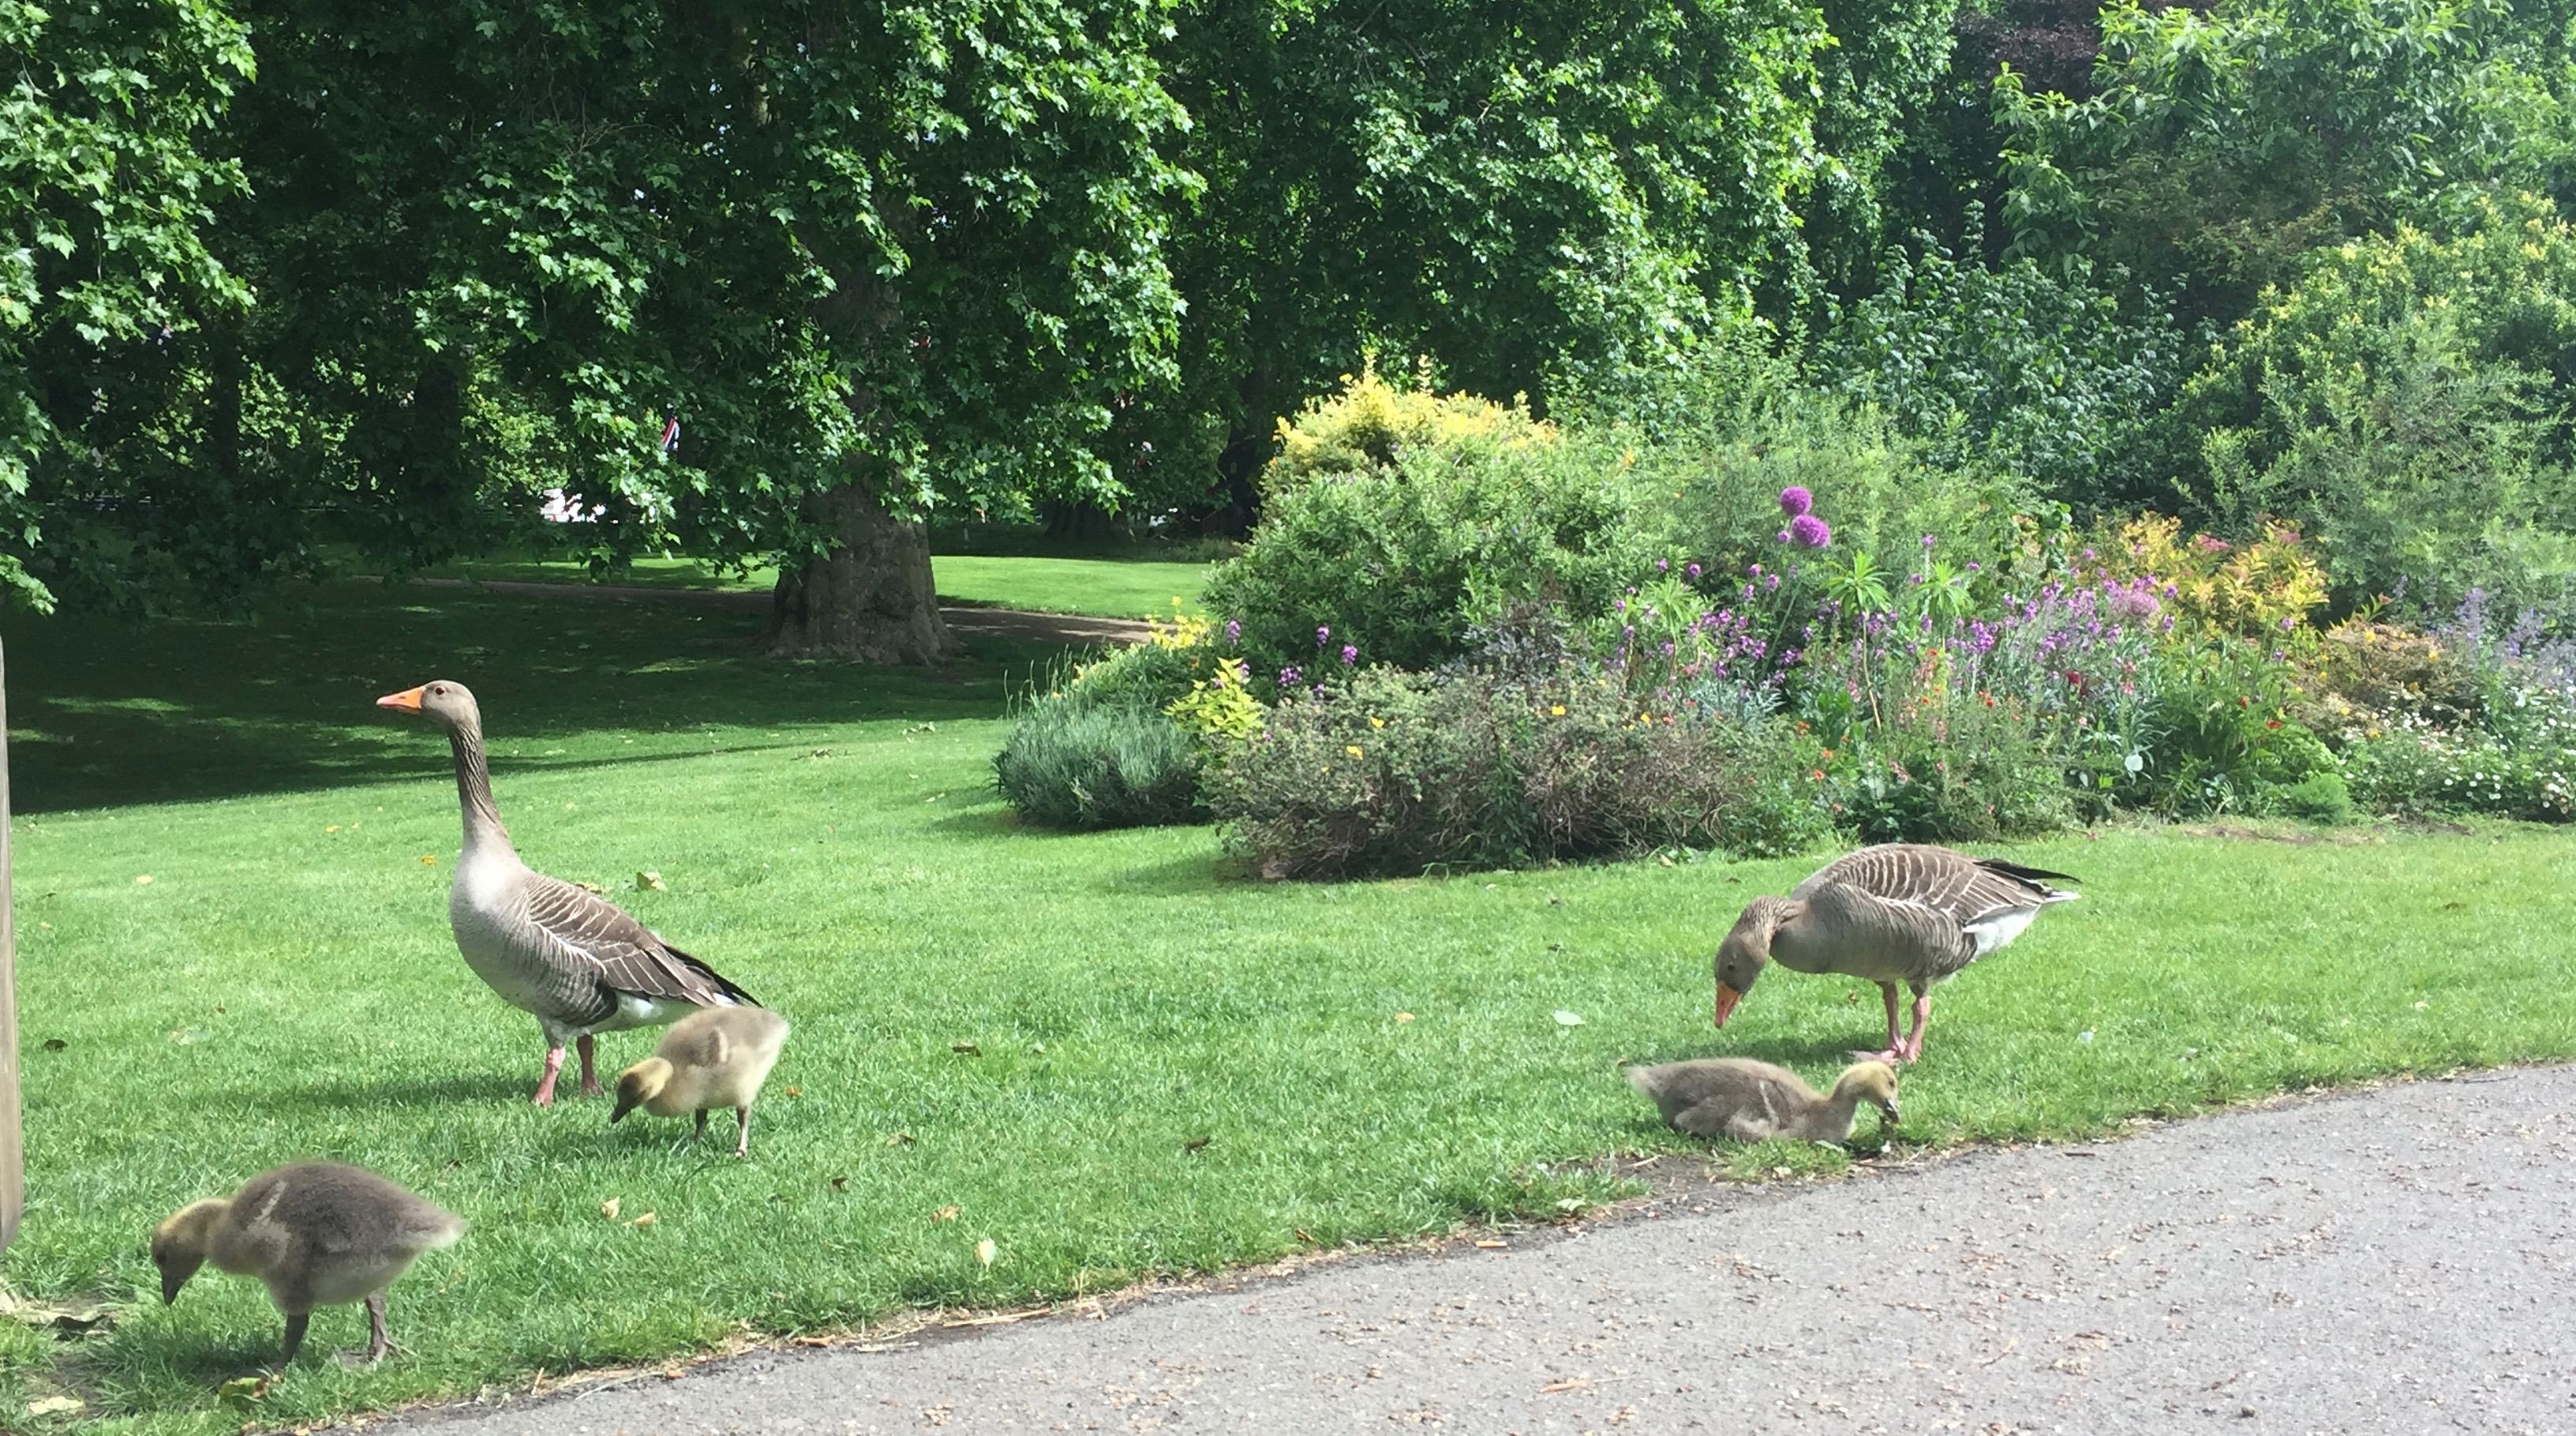 Two adult geese and several goslings eating grass